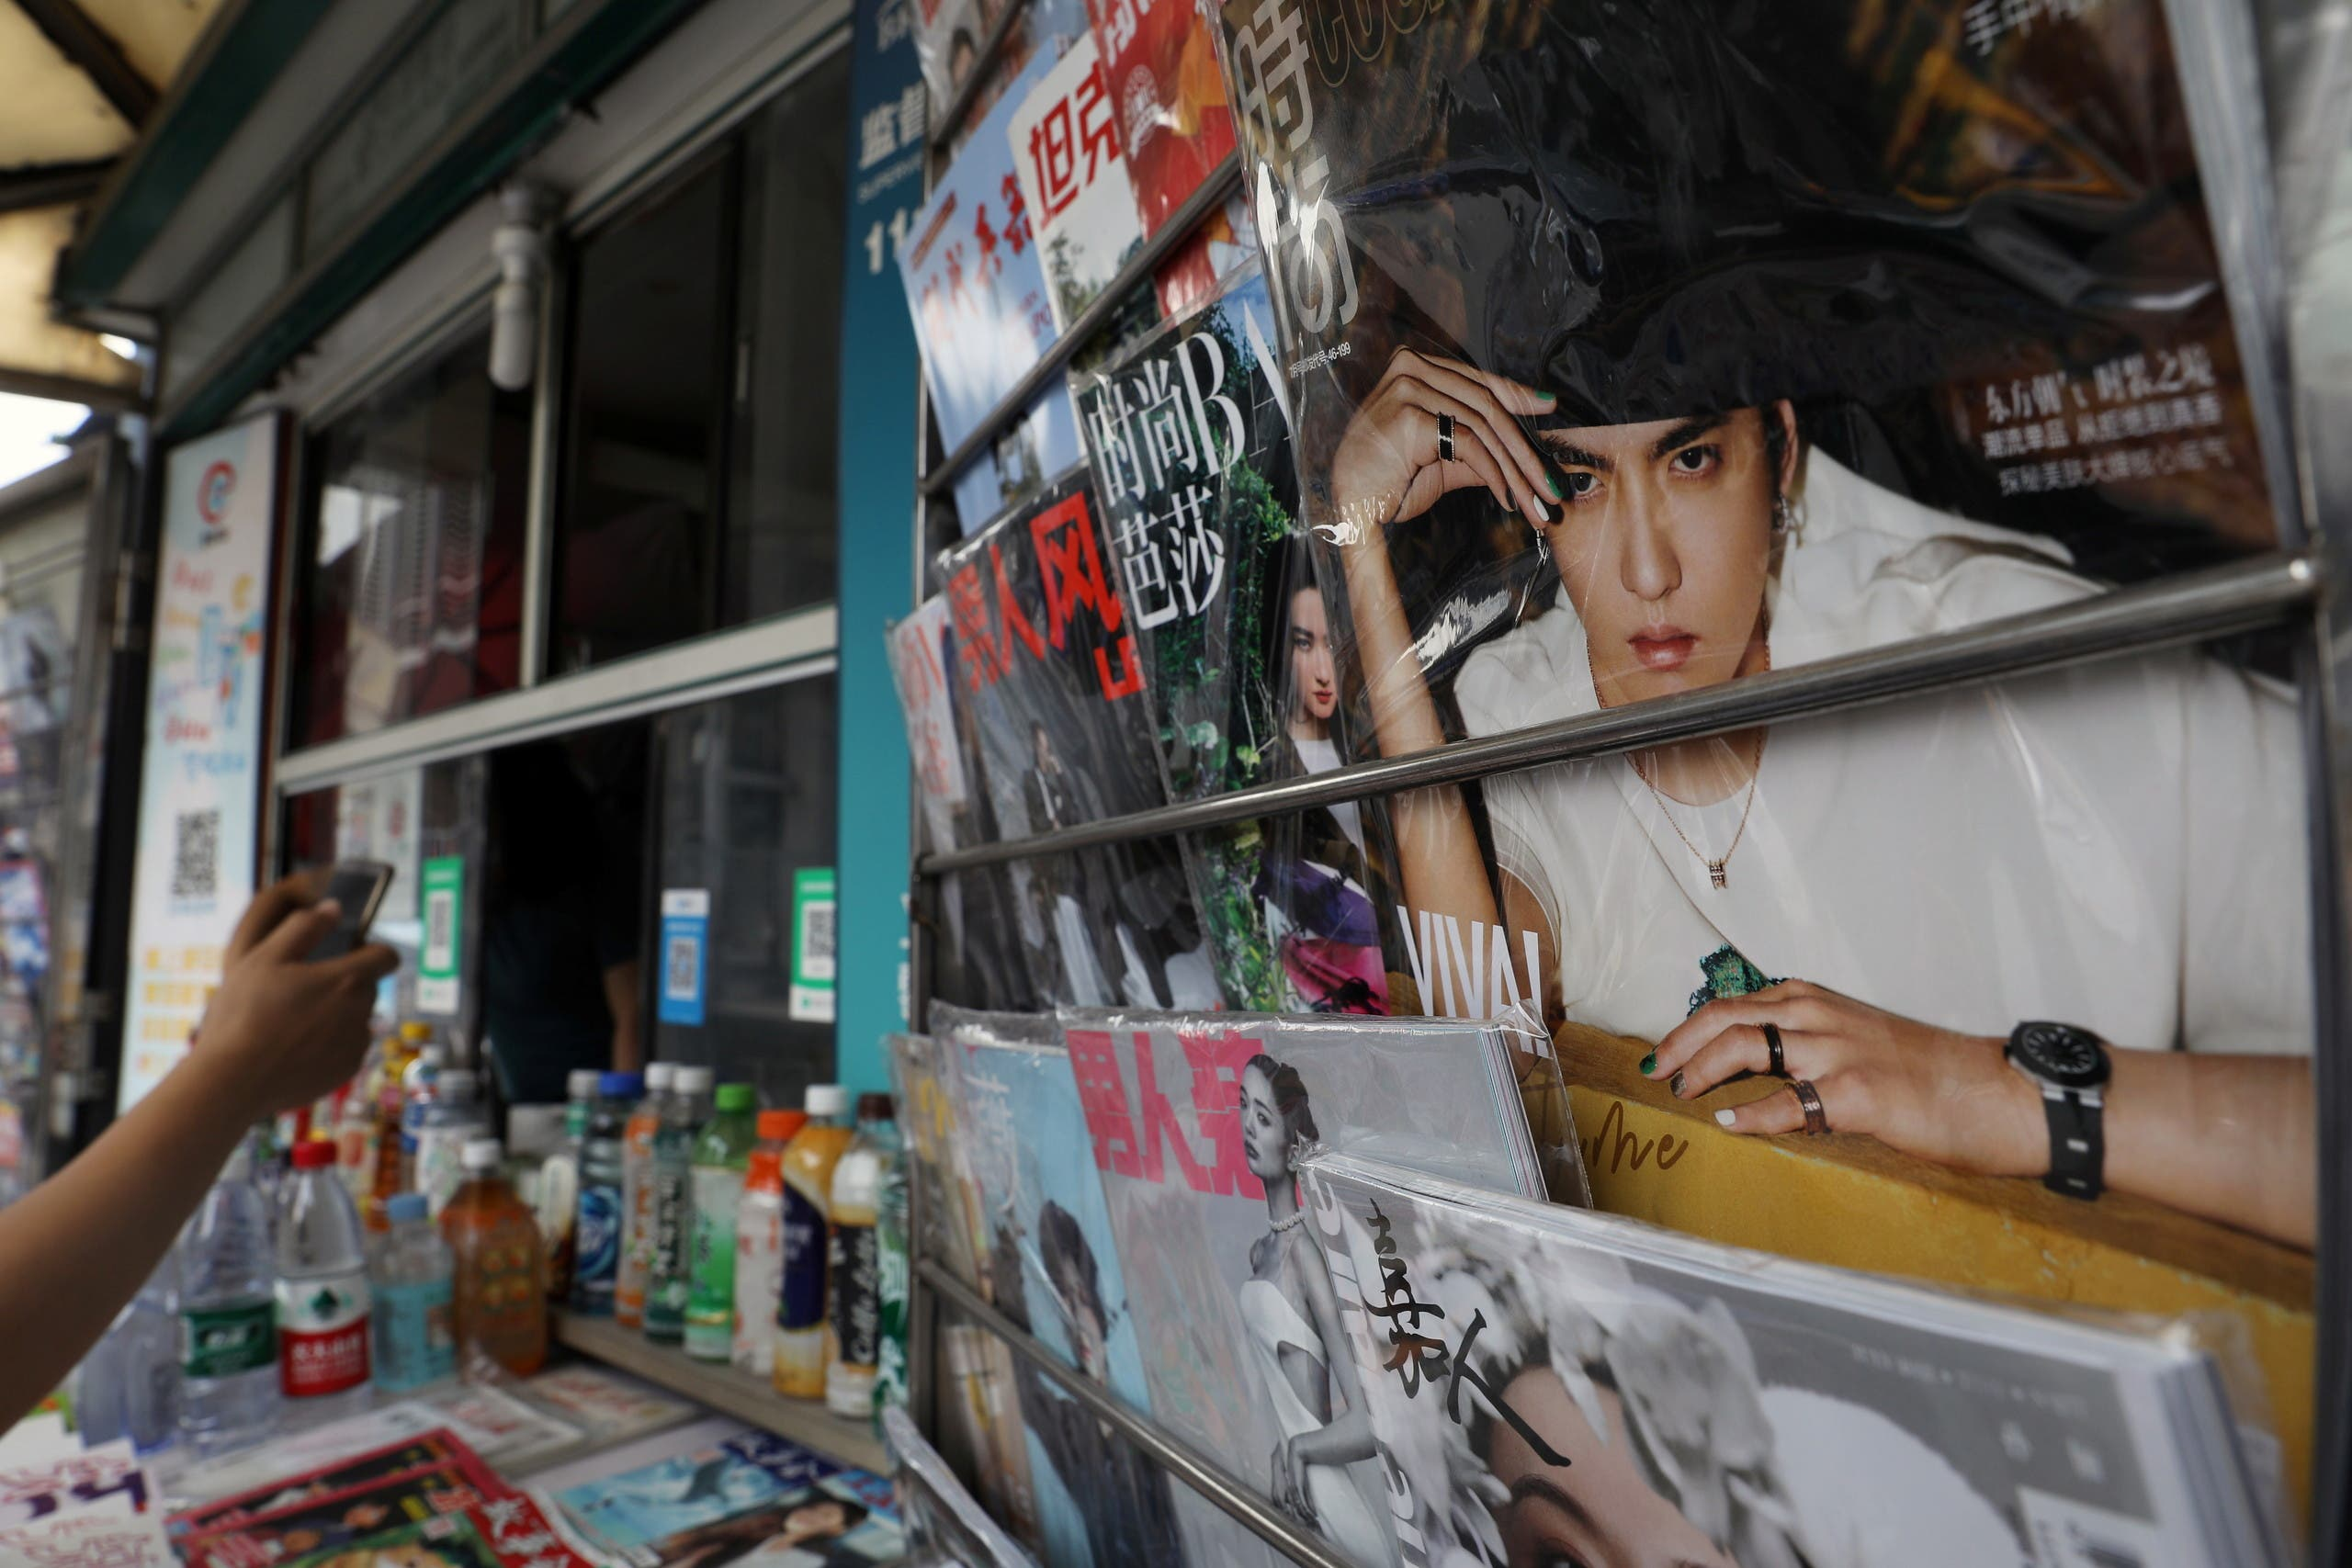 Singer-actor Kris Wu is seen on the cover of a fashion magazine at a newsstand in Beijing, China July 20, 2021. (Reuters)